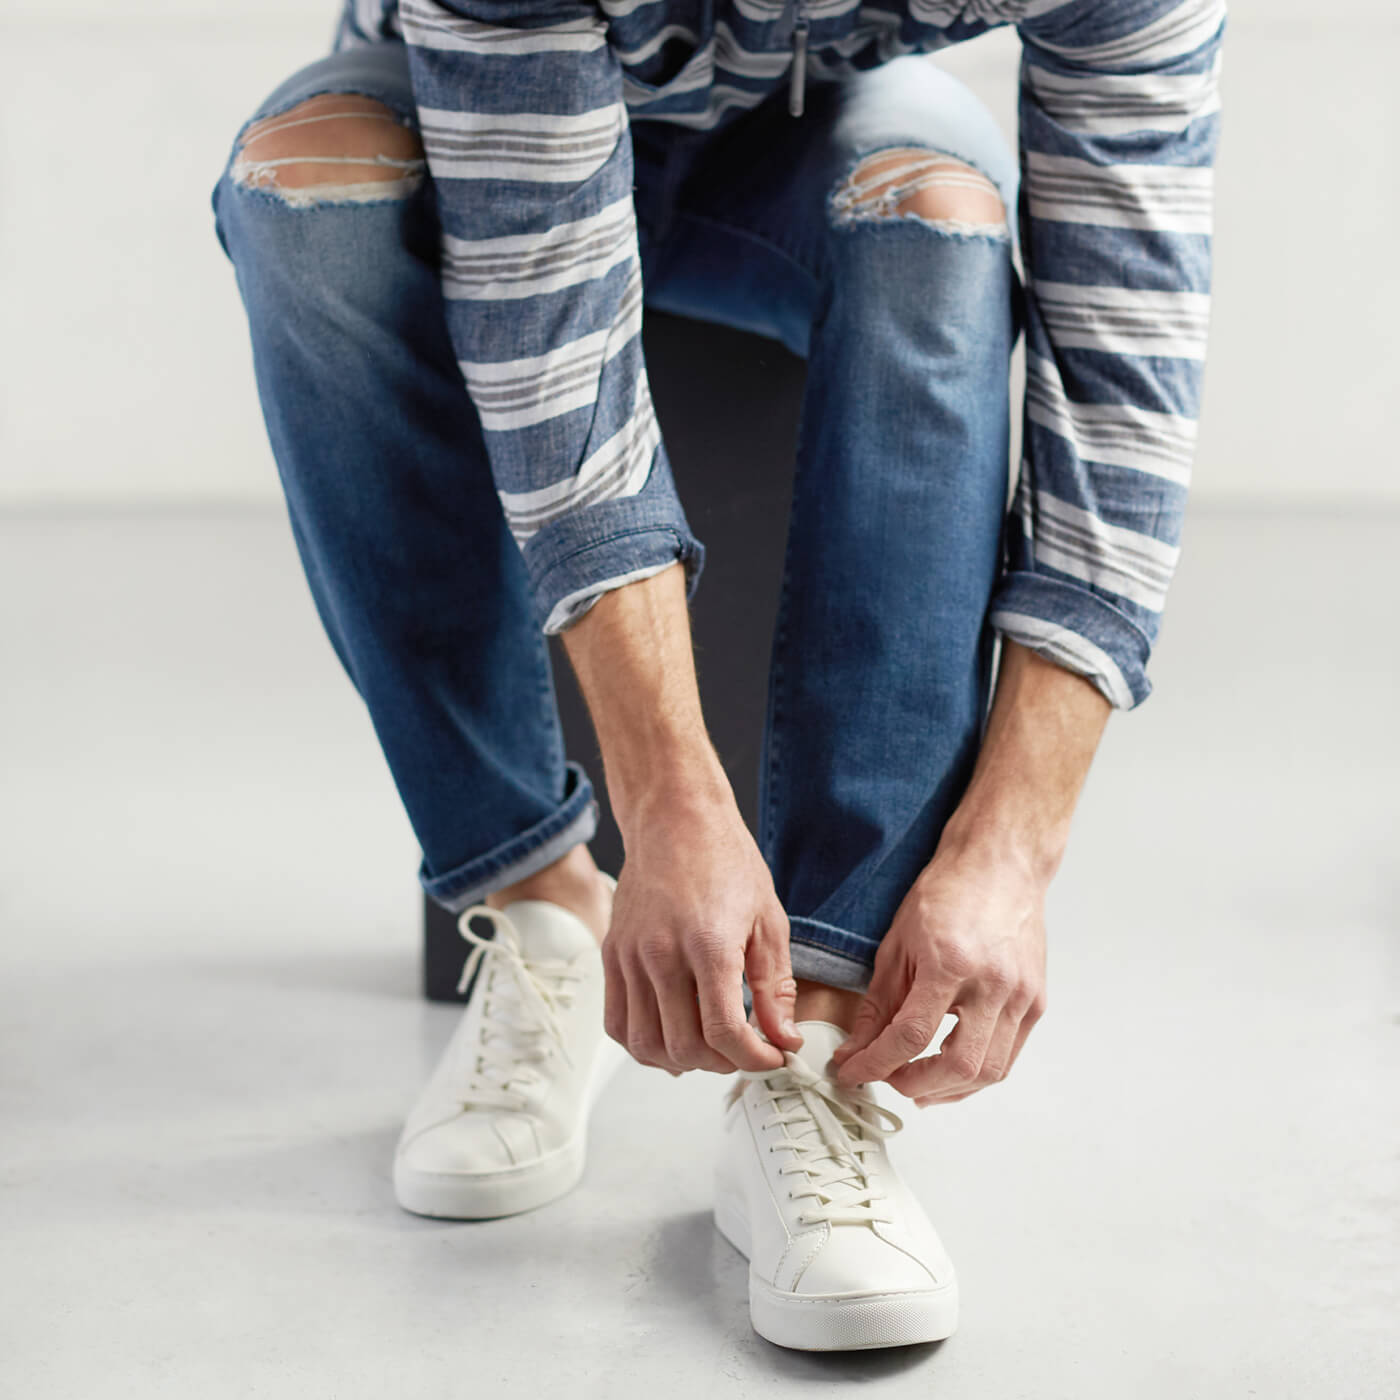 e5f7954267aba1 The Right Way to Pair Jeans with Shoes